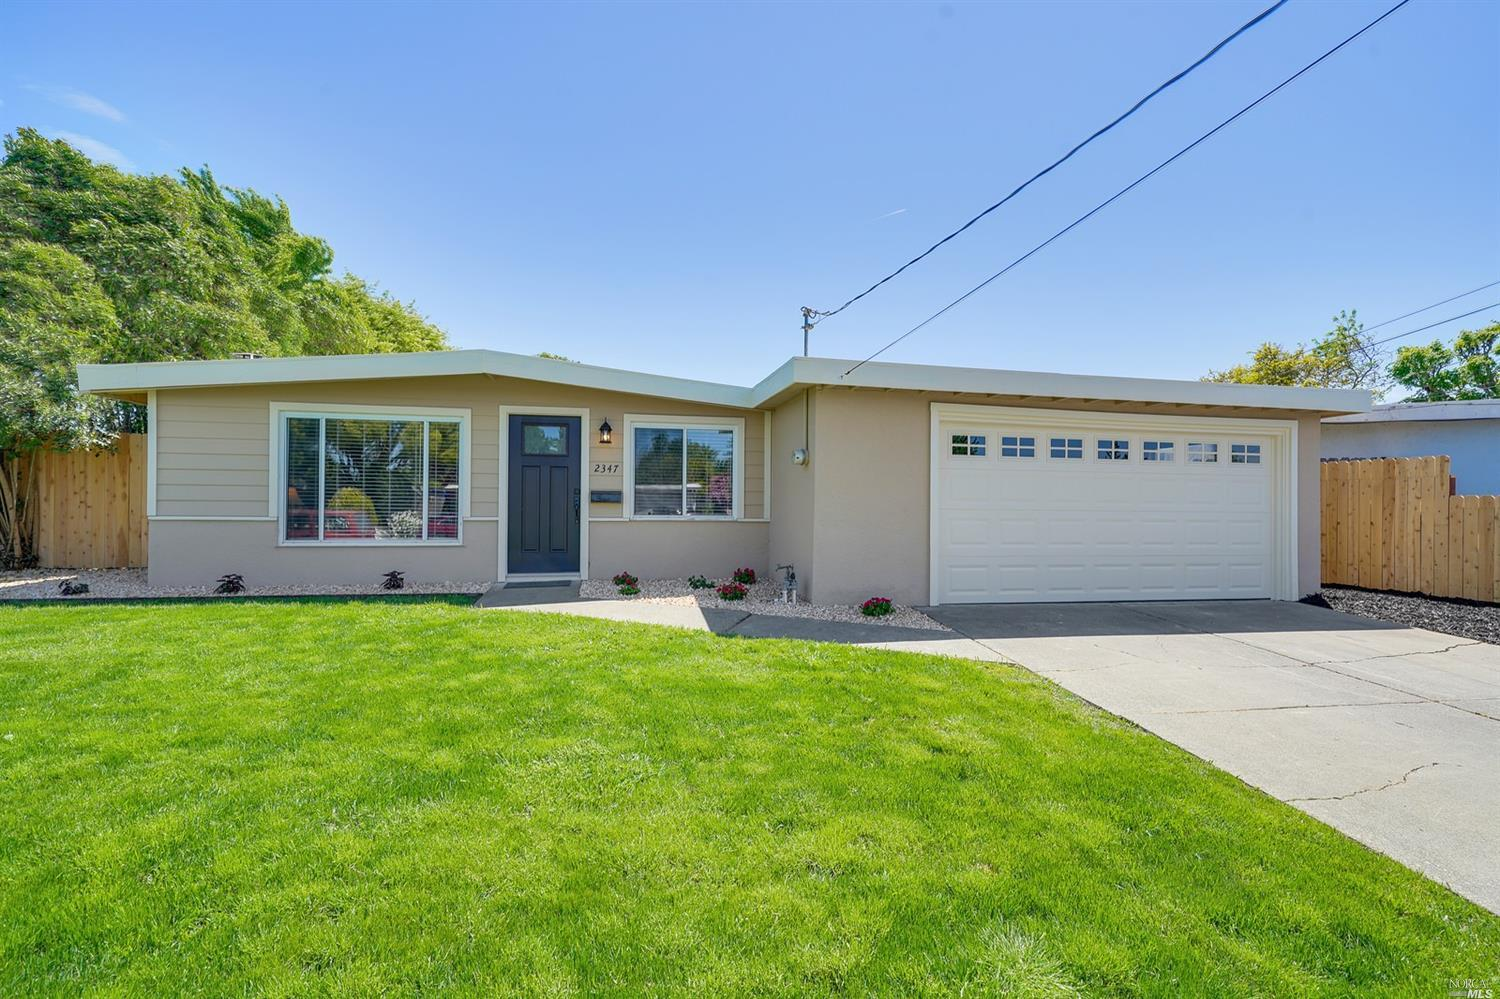 Affordable Living in The Napa Valley!  Completely Remodeled Mid-Century Modern. This Single-Story home is Turn Key. Energy Efficient Multi-Zone Air Conditioner/HeaterSystem installed in every room for your comfort. Kitchen features custom White Shaker Soft-Close cabinets, quarts counters, stainless- steel appliances and an additional pantry that offers Lots of Extra Storage for all your Gourmet Cooking needs! You will appreciate the high-end details this home offers including the open beam ceiling, bronze hardware throughout, stylish rustic grey'' wide plank floors with 5 1/2inch baseboards. So Pretty! Out back has a covered patio and a spacious yard to play and entertain with a new fence and fresh landscape.  So many Great Features and Upd